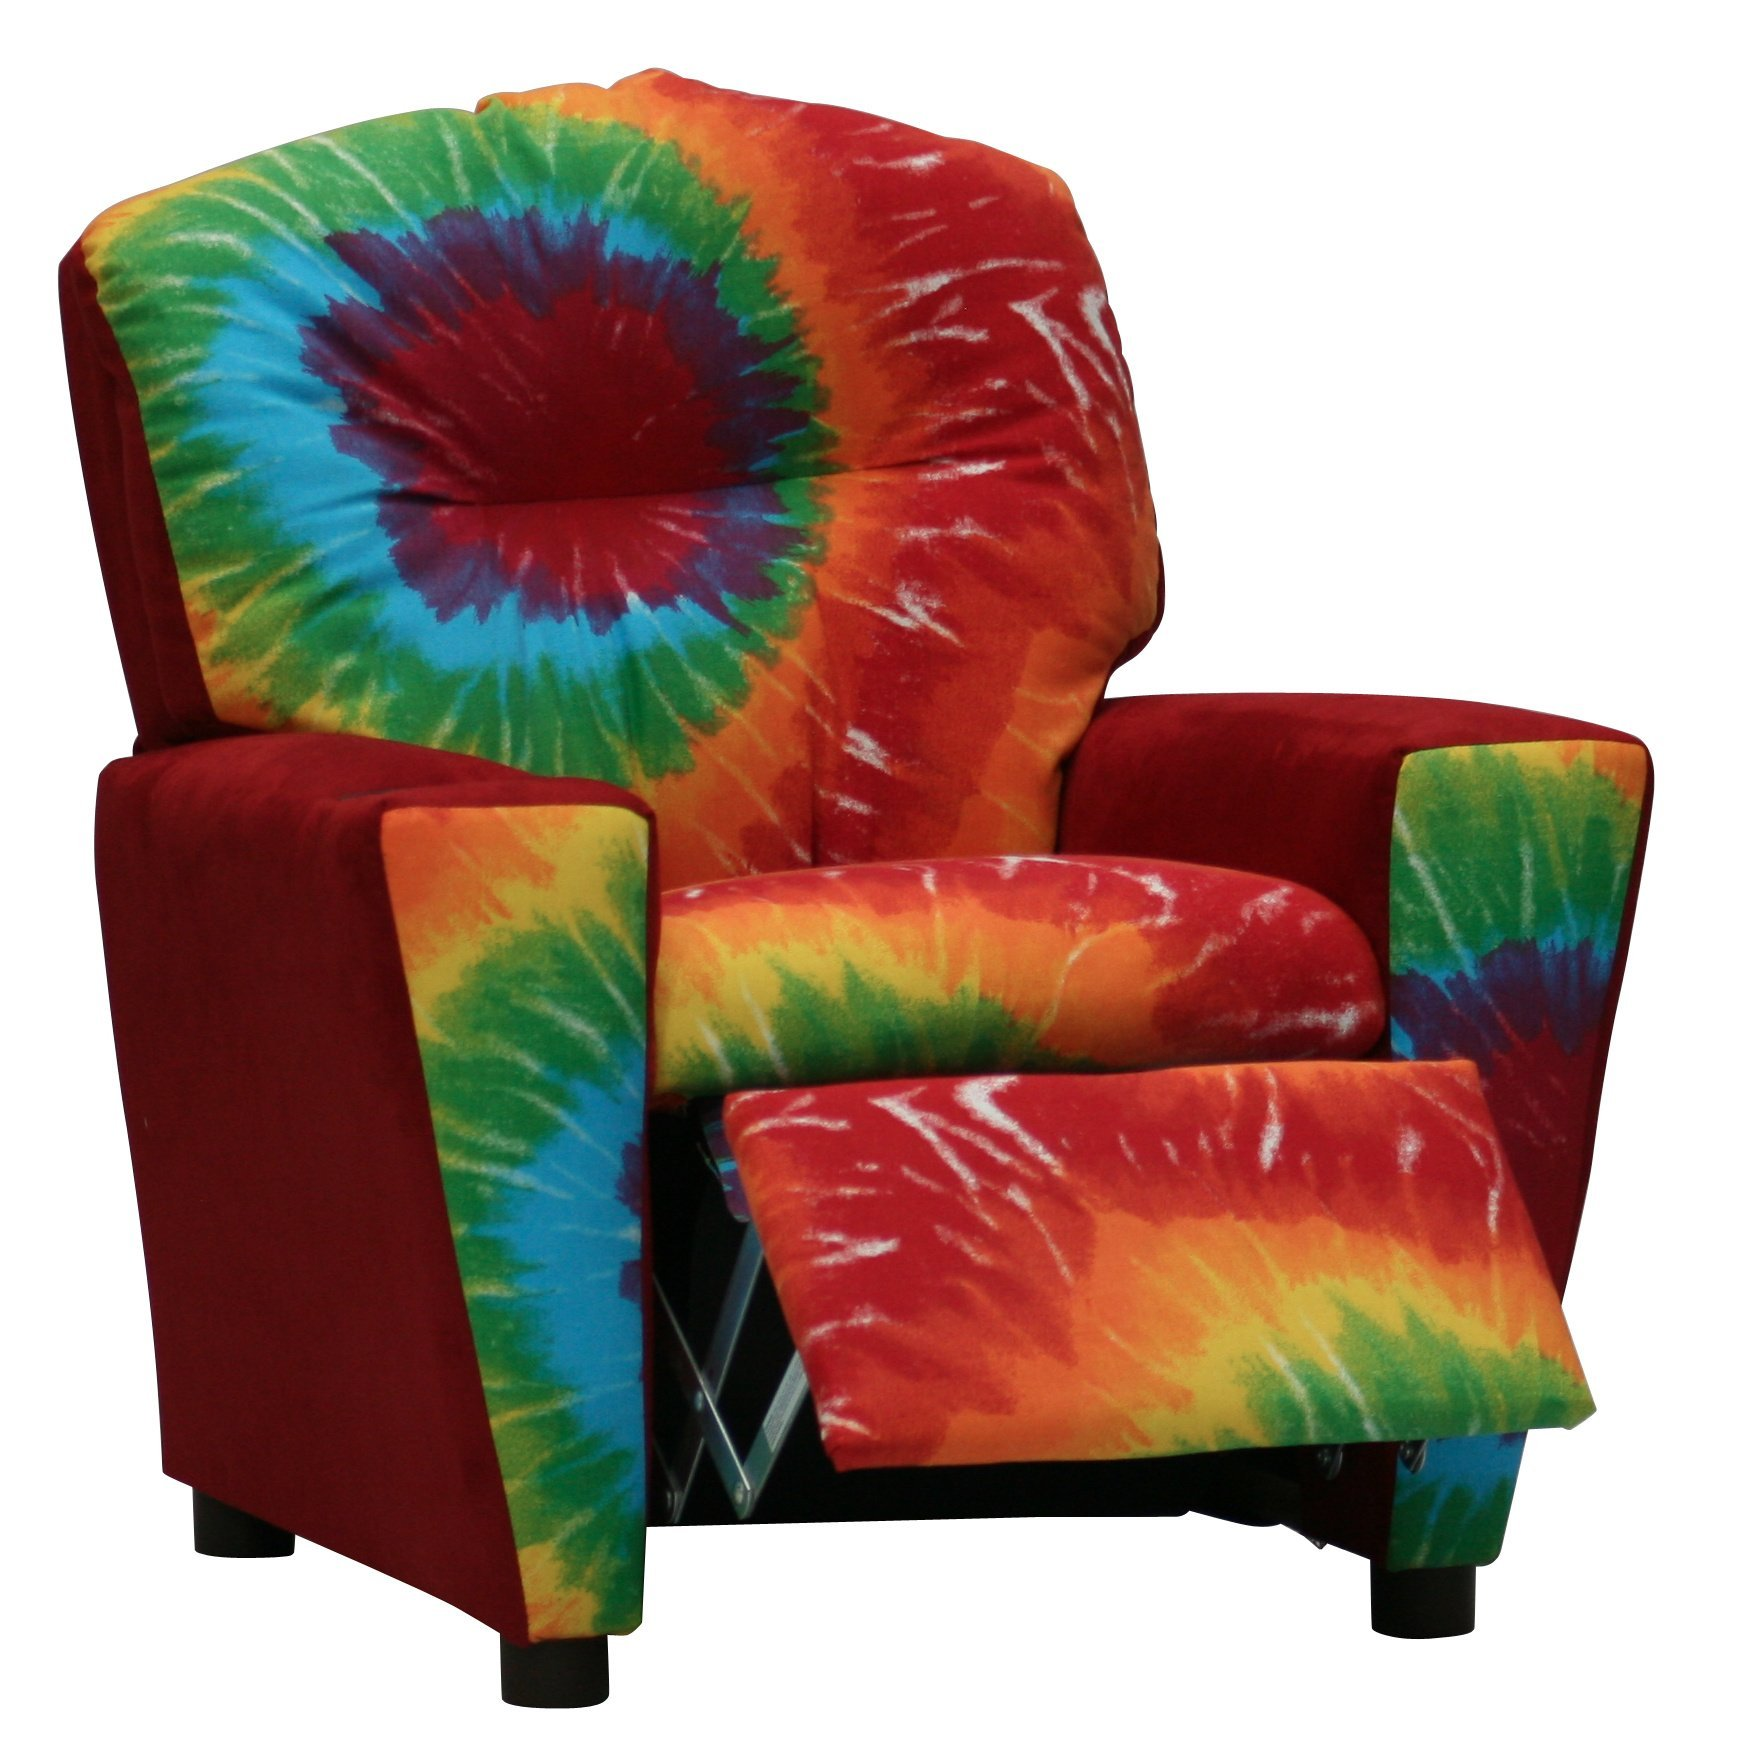 Toddler Upholstered Recliner - Your Child will Love Having Their Own Chair - 2 Tie Dye Fabric Choices (Red Tie Die Sunburst)